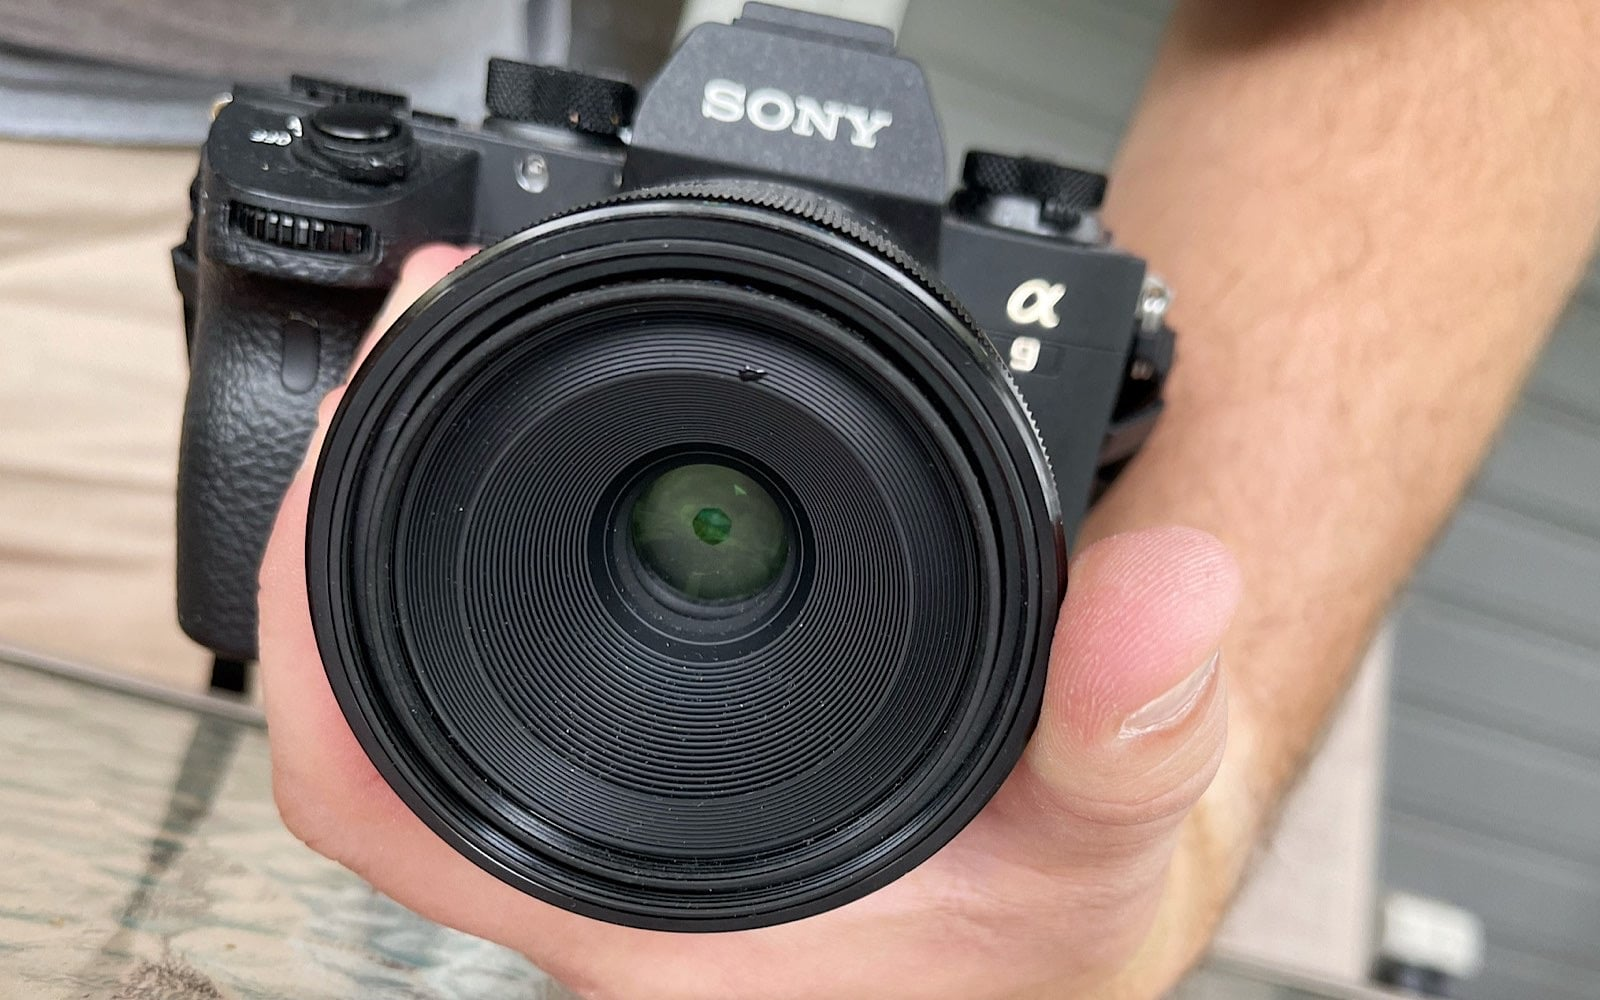 When you have the right hand-hold on a camera, you can hold it without fear of dropping it